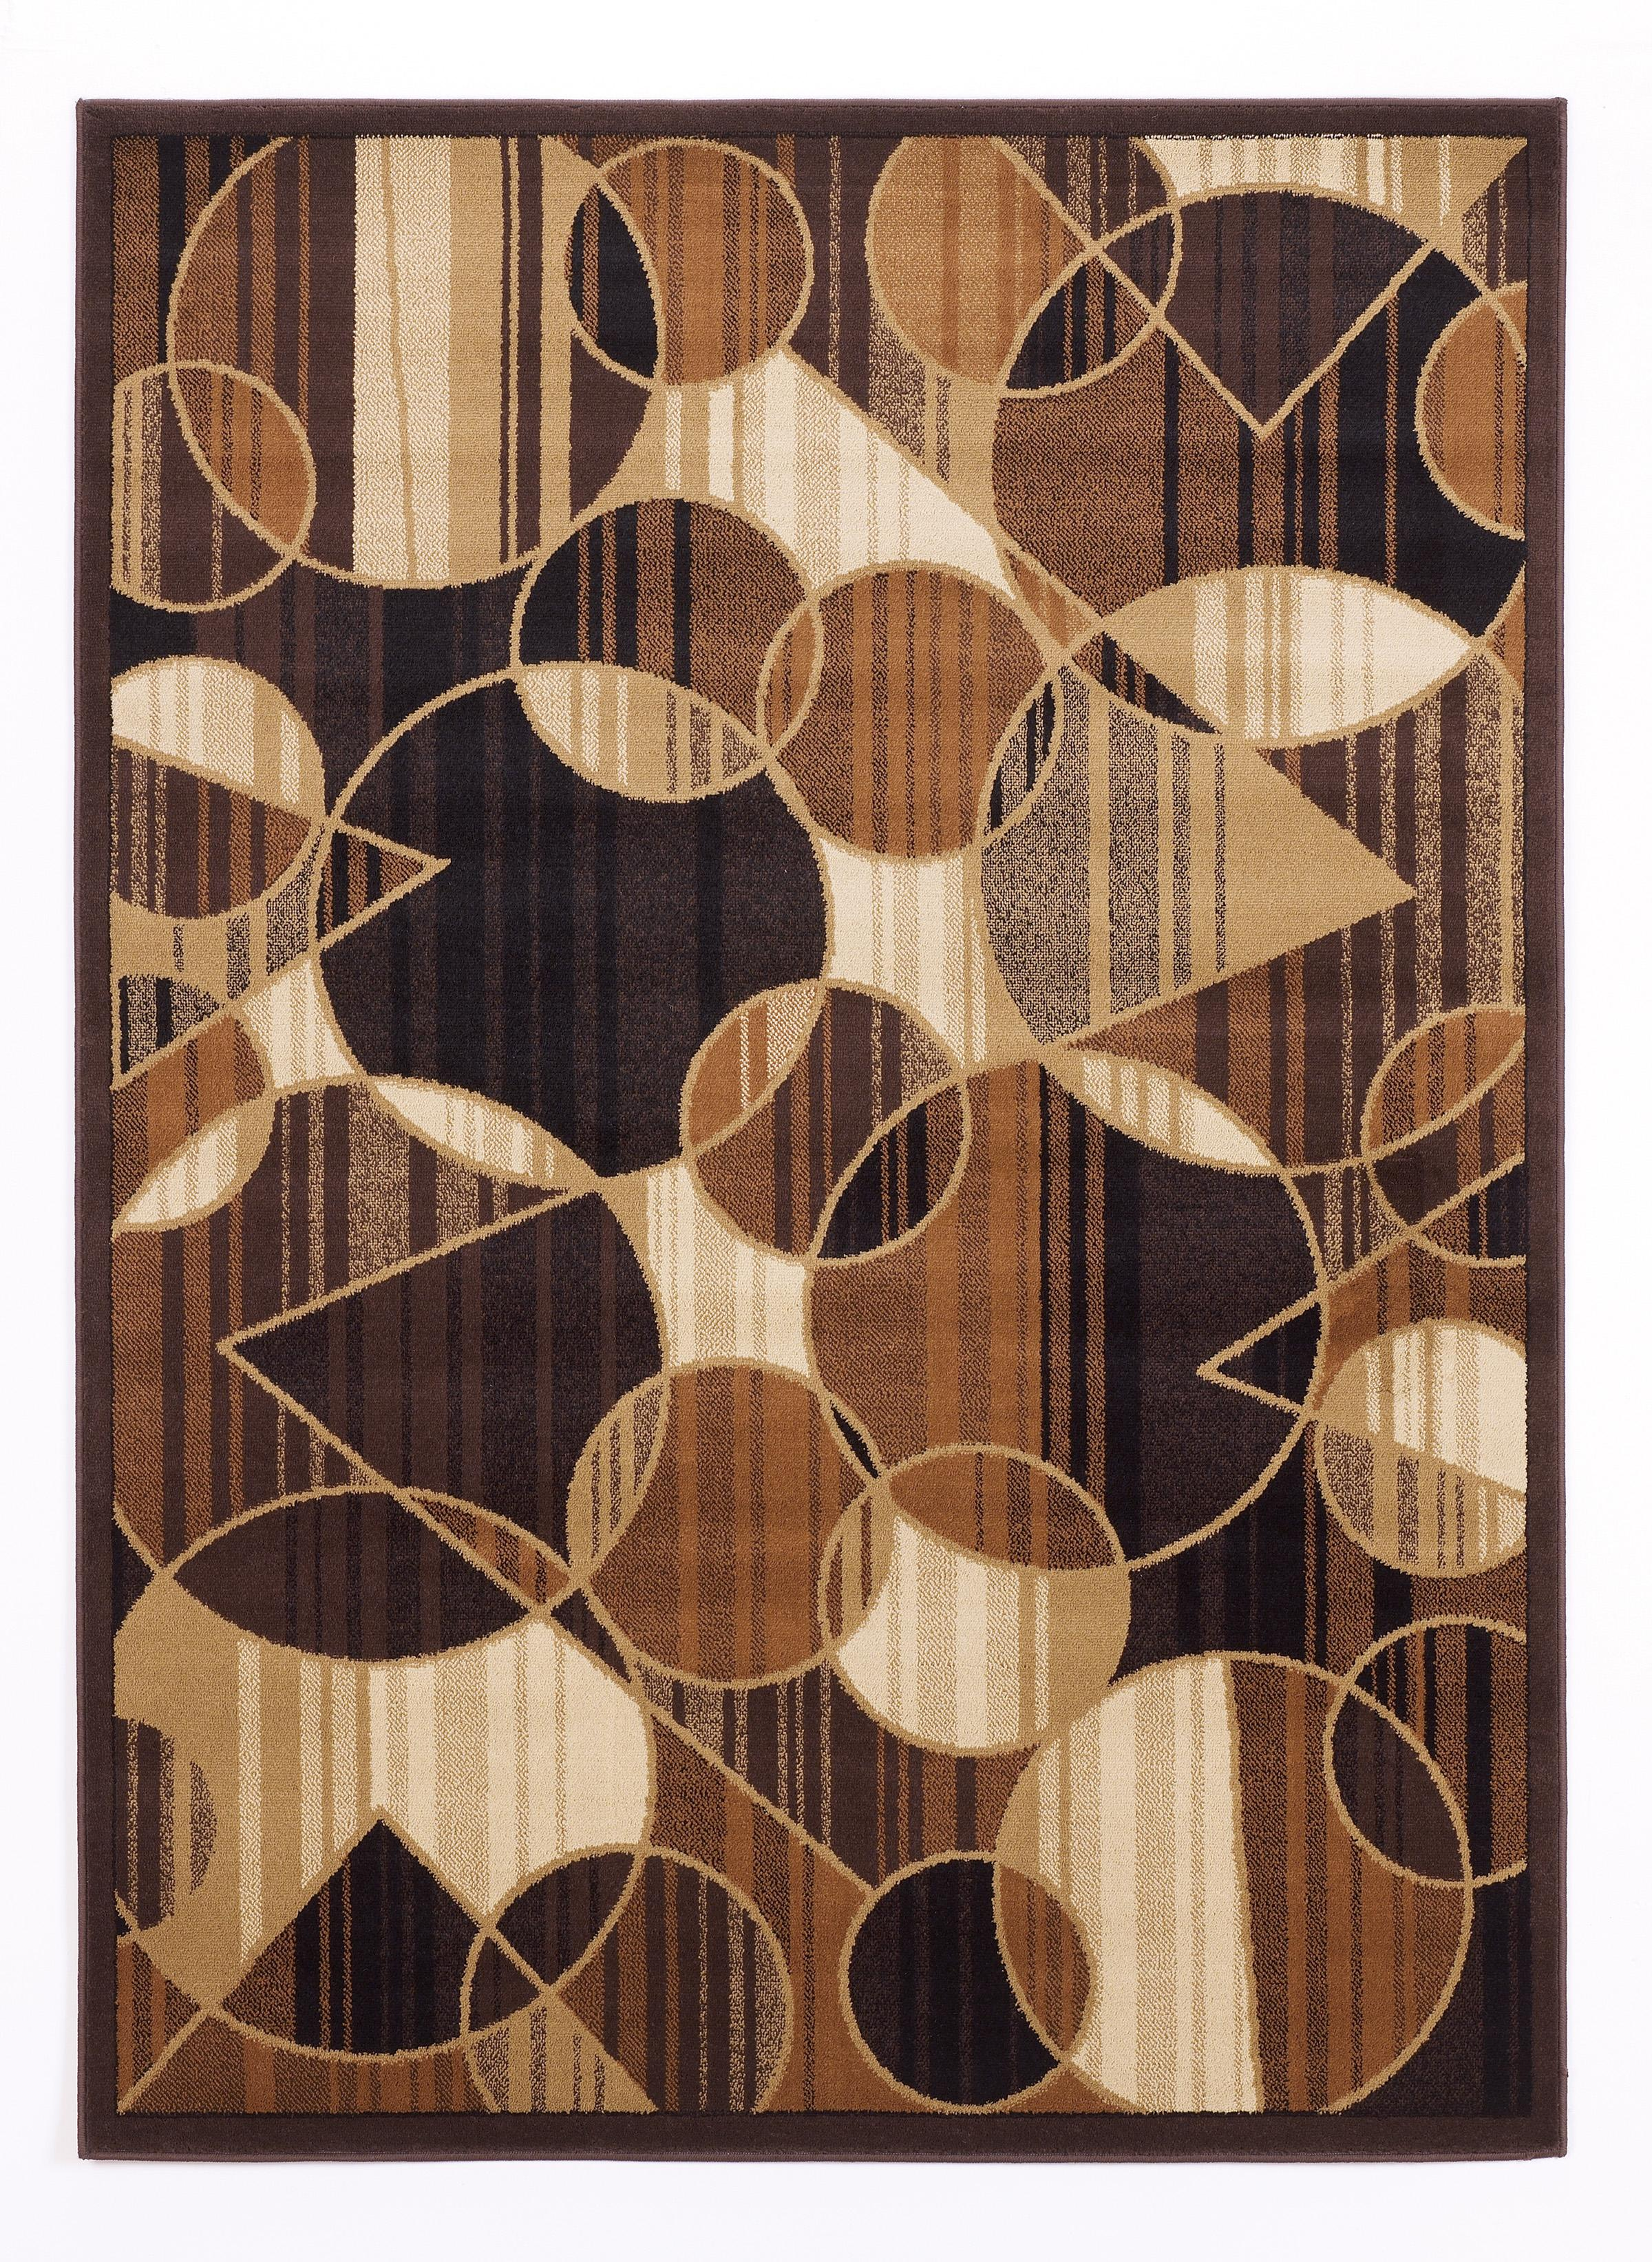 Signature Design by Ashley Contemporary Area Rugs Calder - Multi Rug - Item Number: R135012